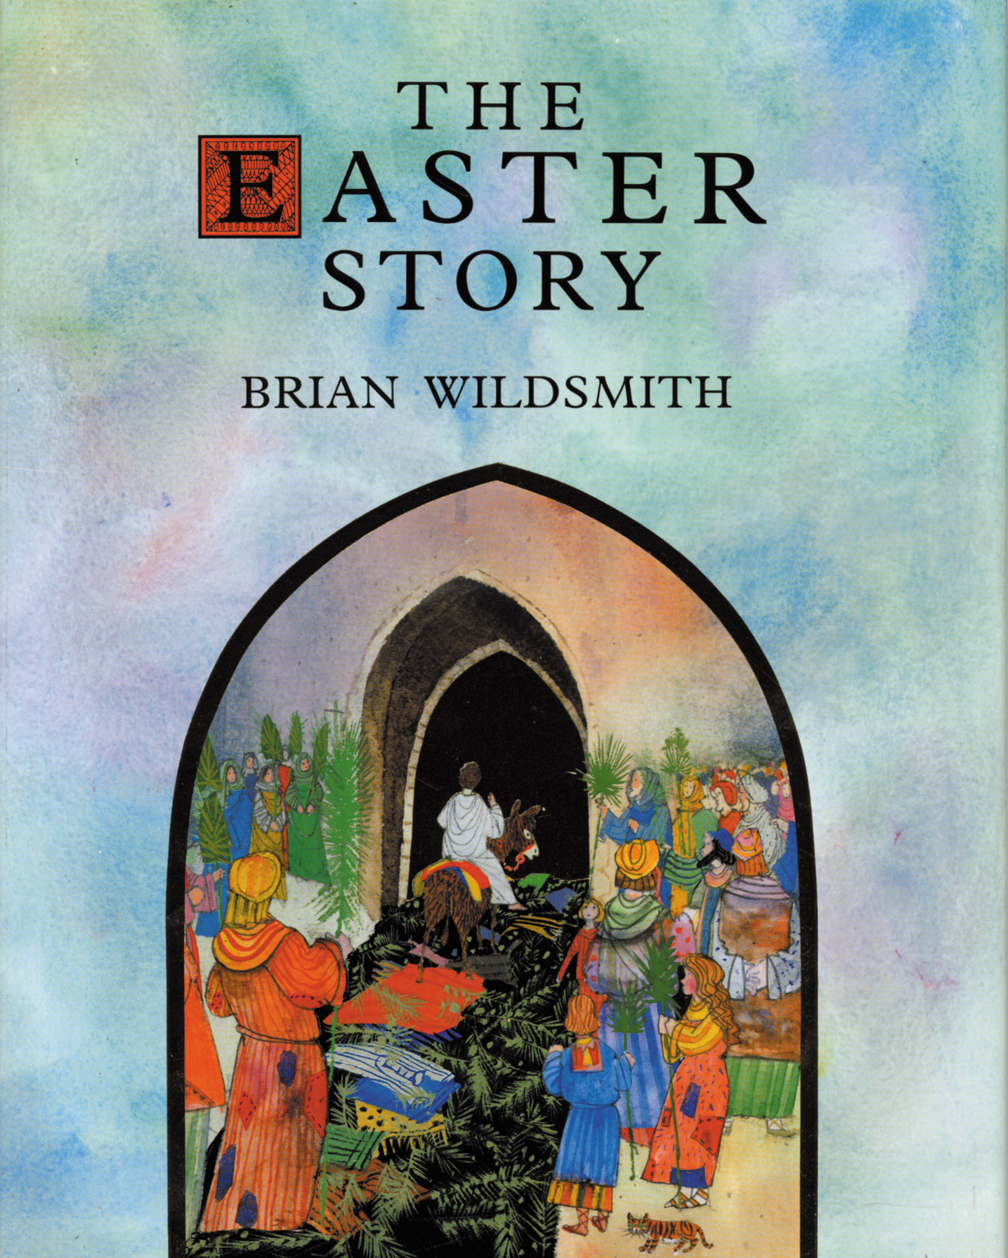 Suggested reading: The Easter Story